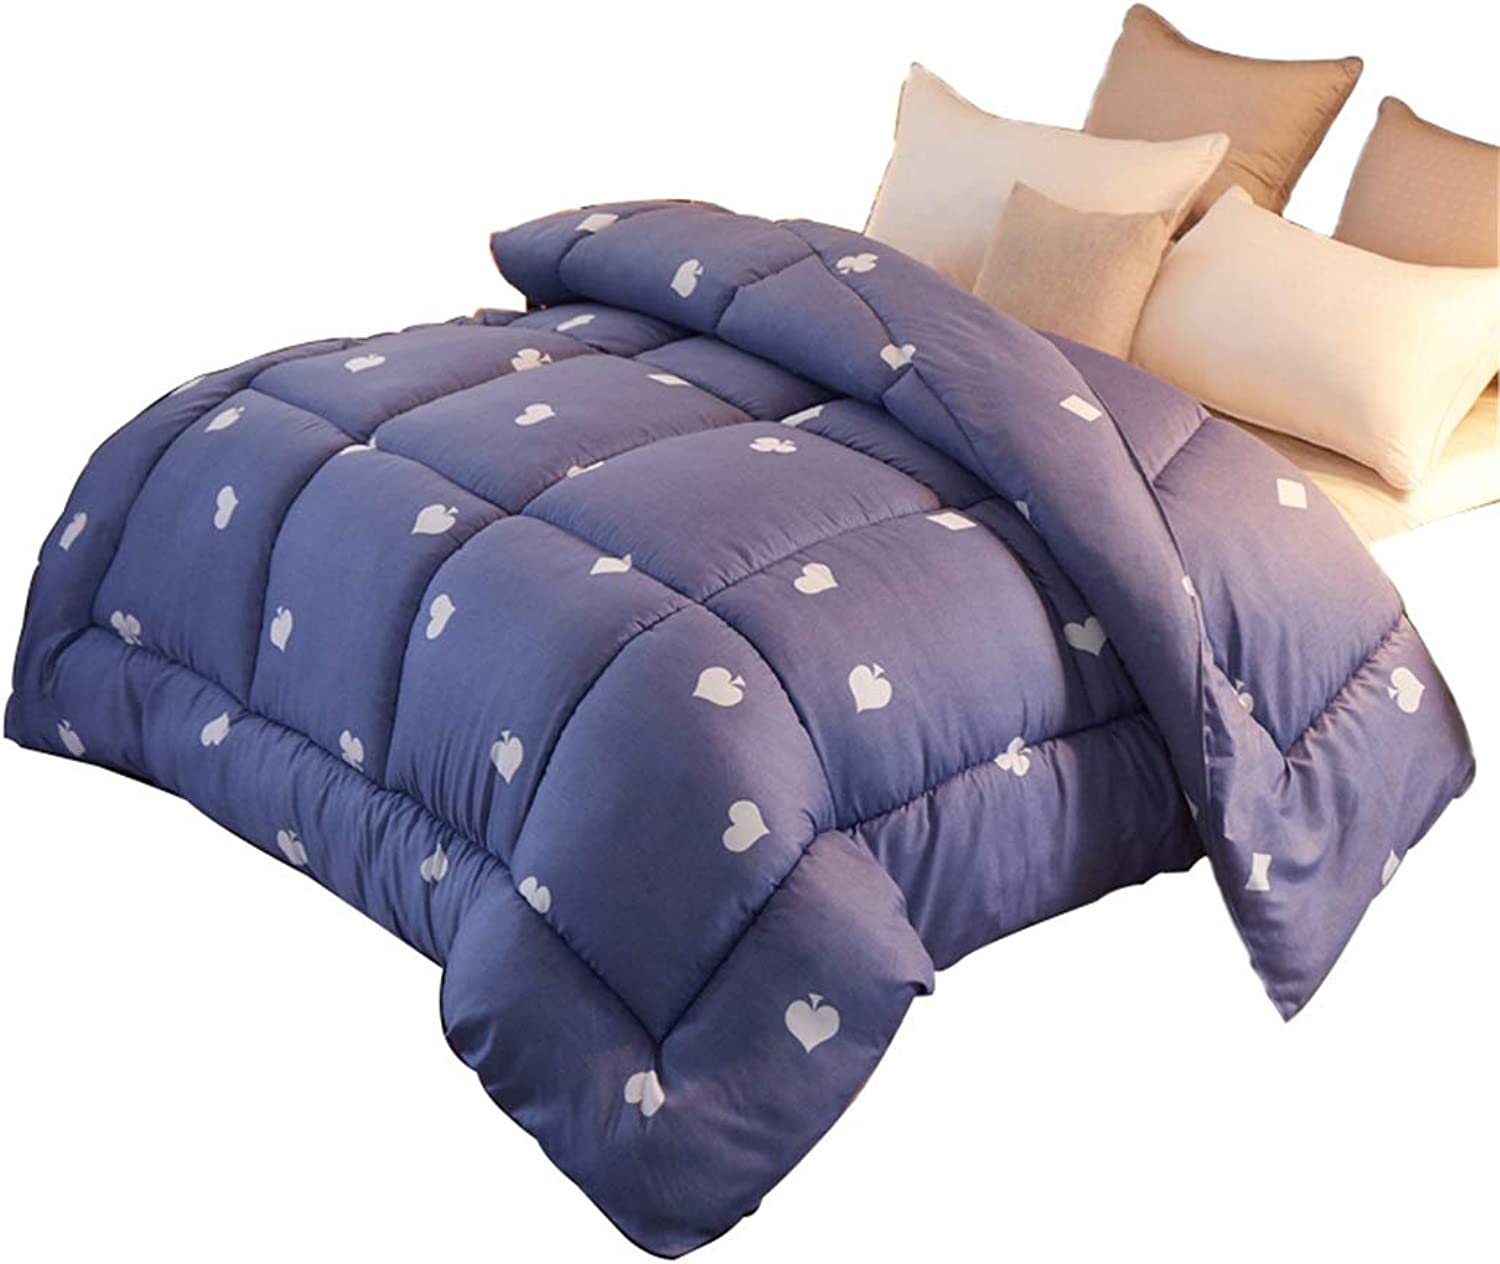 Warm Quilt Quilted Quilt 100% Polyester Fiber Filled Warm Increase Thickness Soft Comfortable Fashion Print Winter Active Print Single Twin bluee Heart-Shaped Comforter Antiallergic Quilt